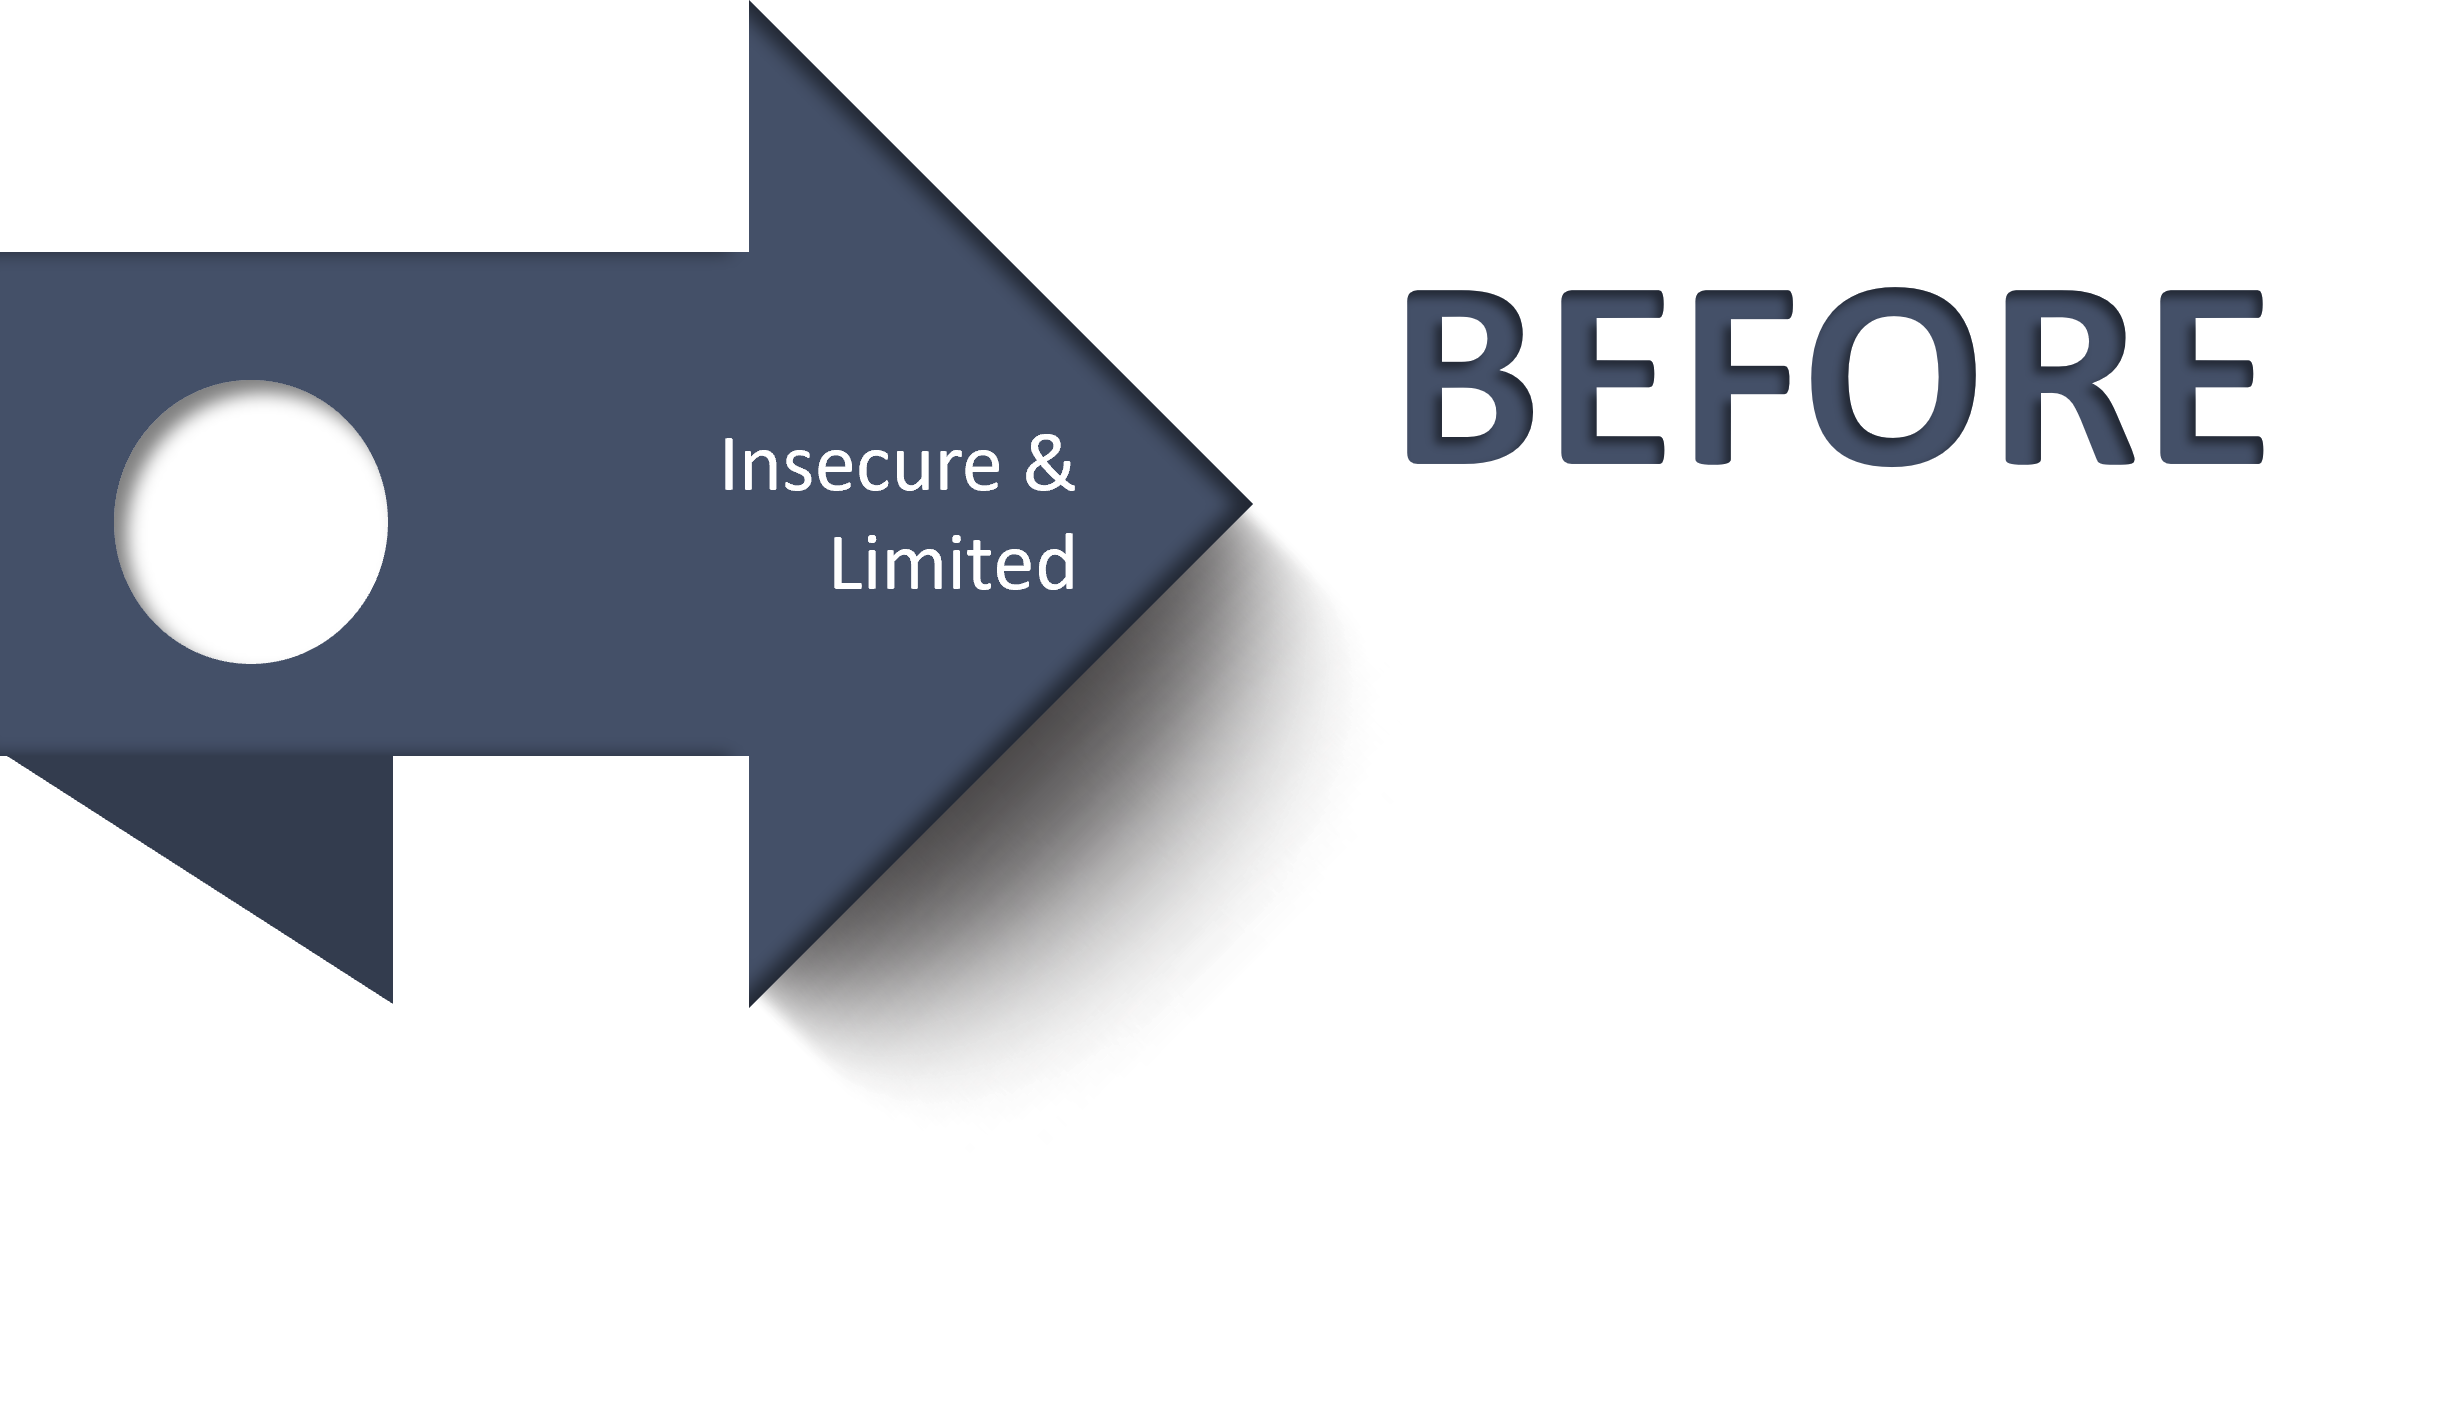 Before-insecure